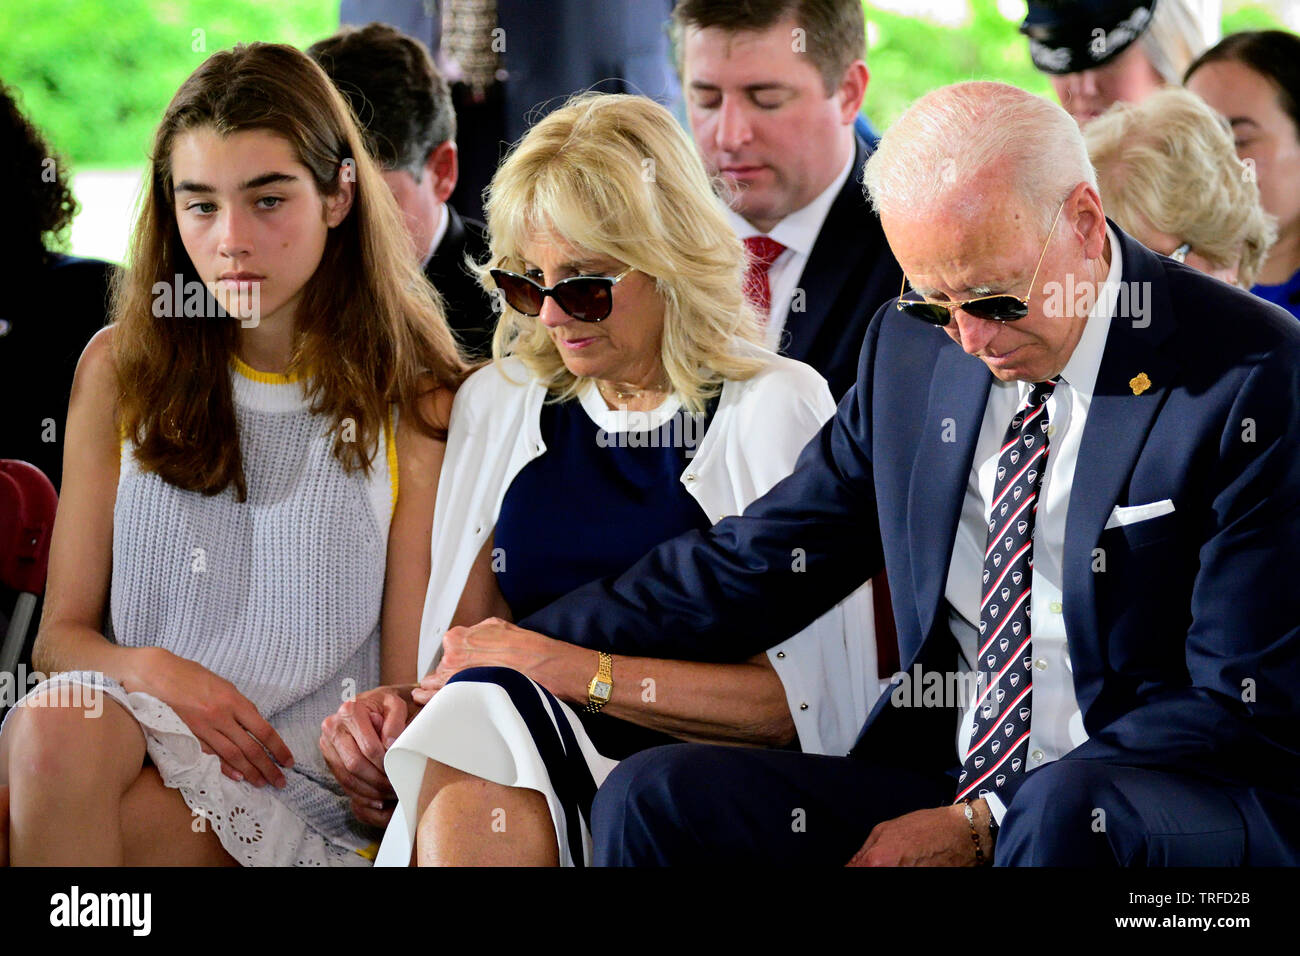 Dr Jill Biden High Resolution Stock Photography And Images Alamy